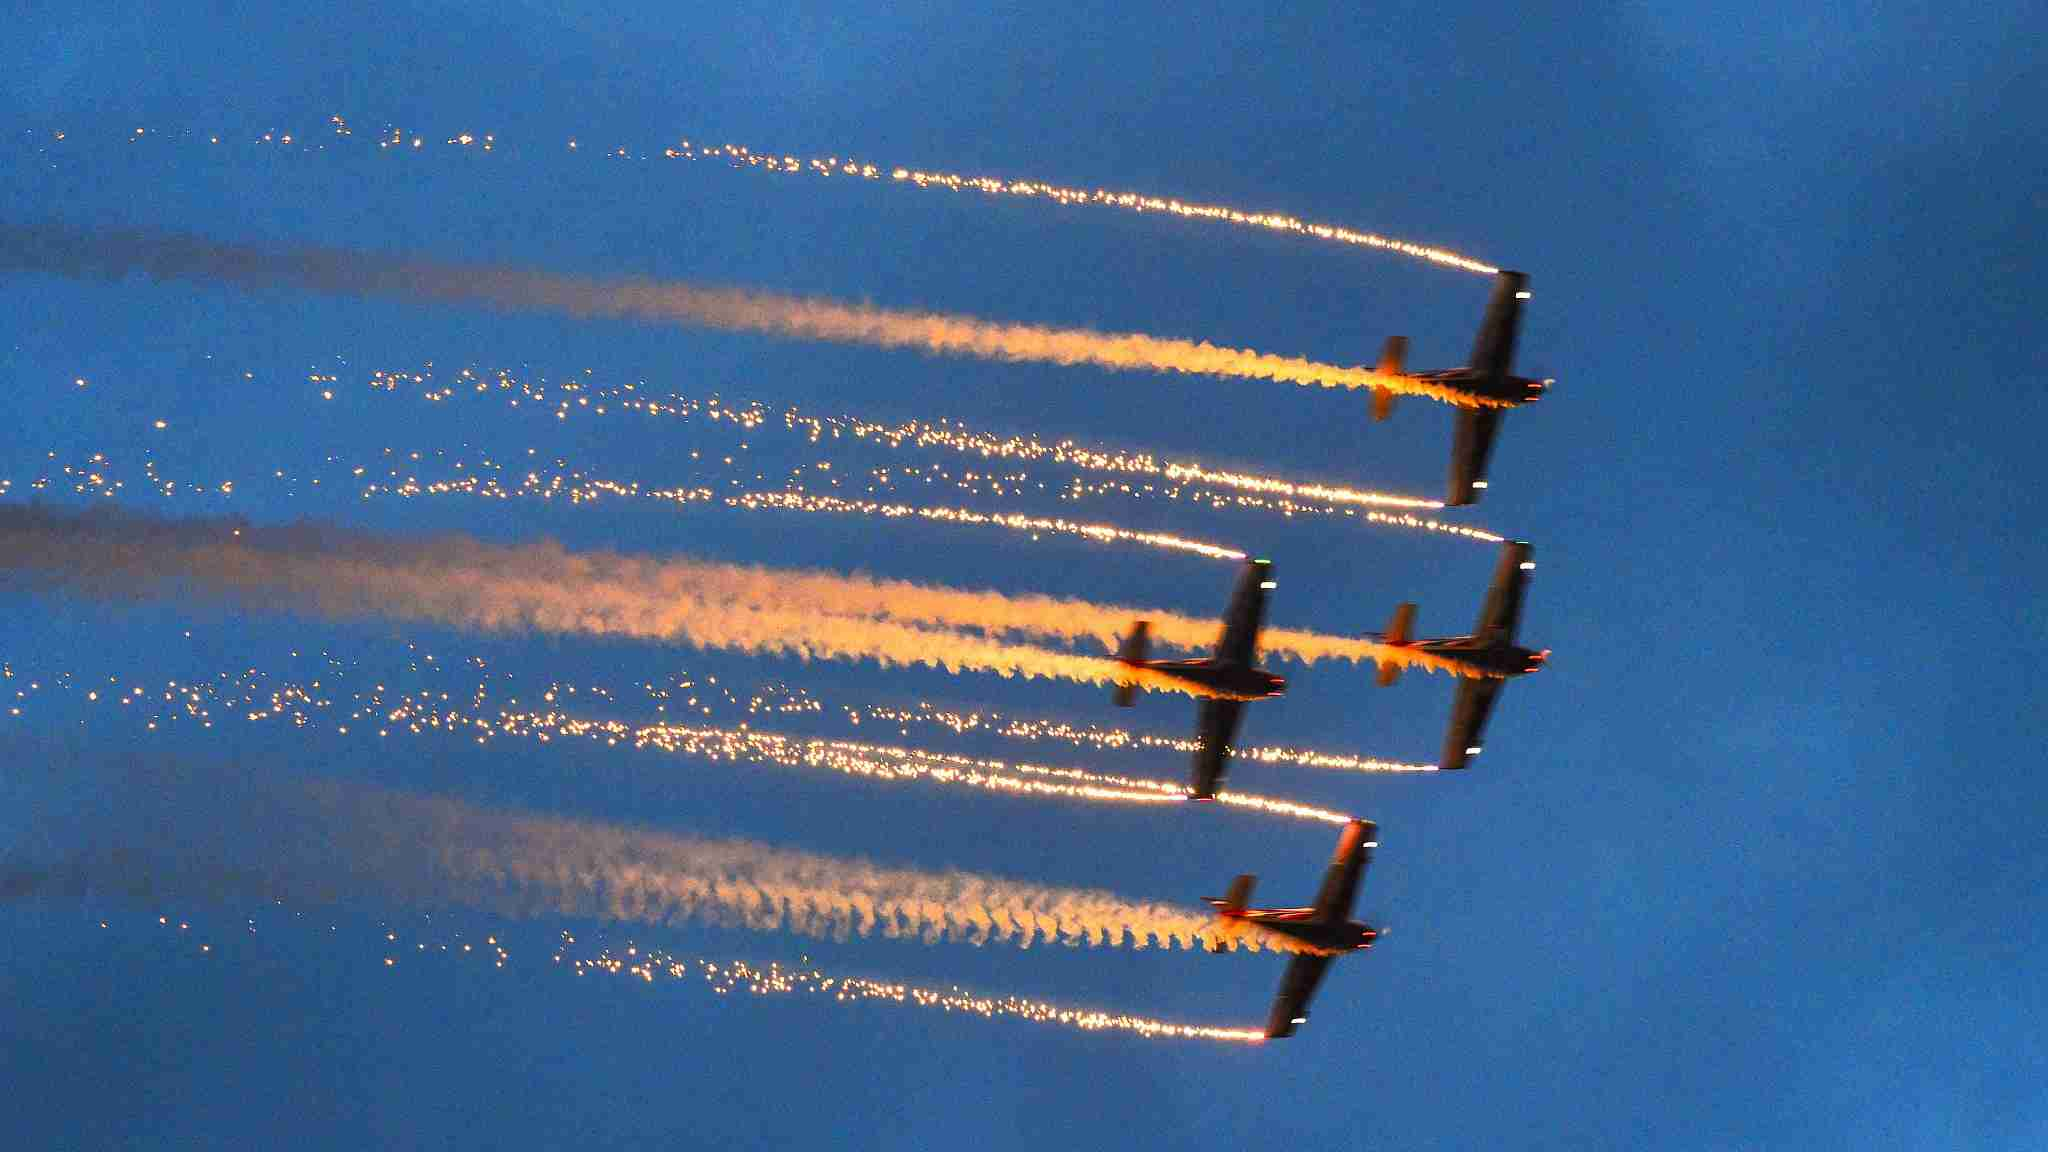 Flight stunts brighten dusk in Guizhou